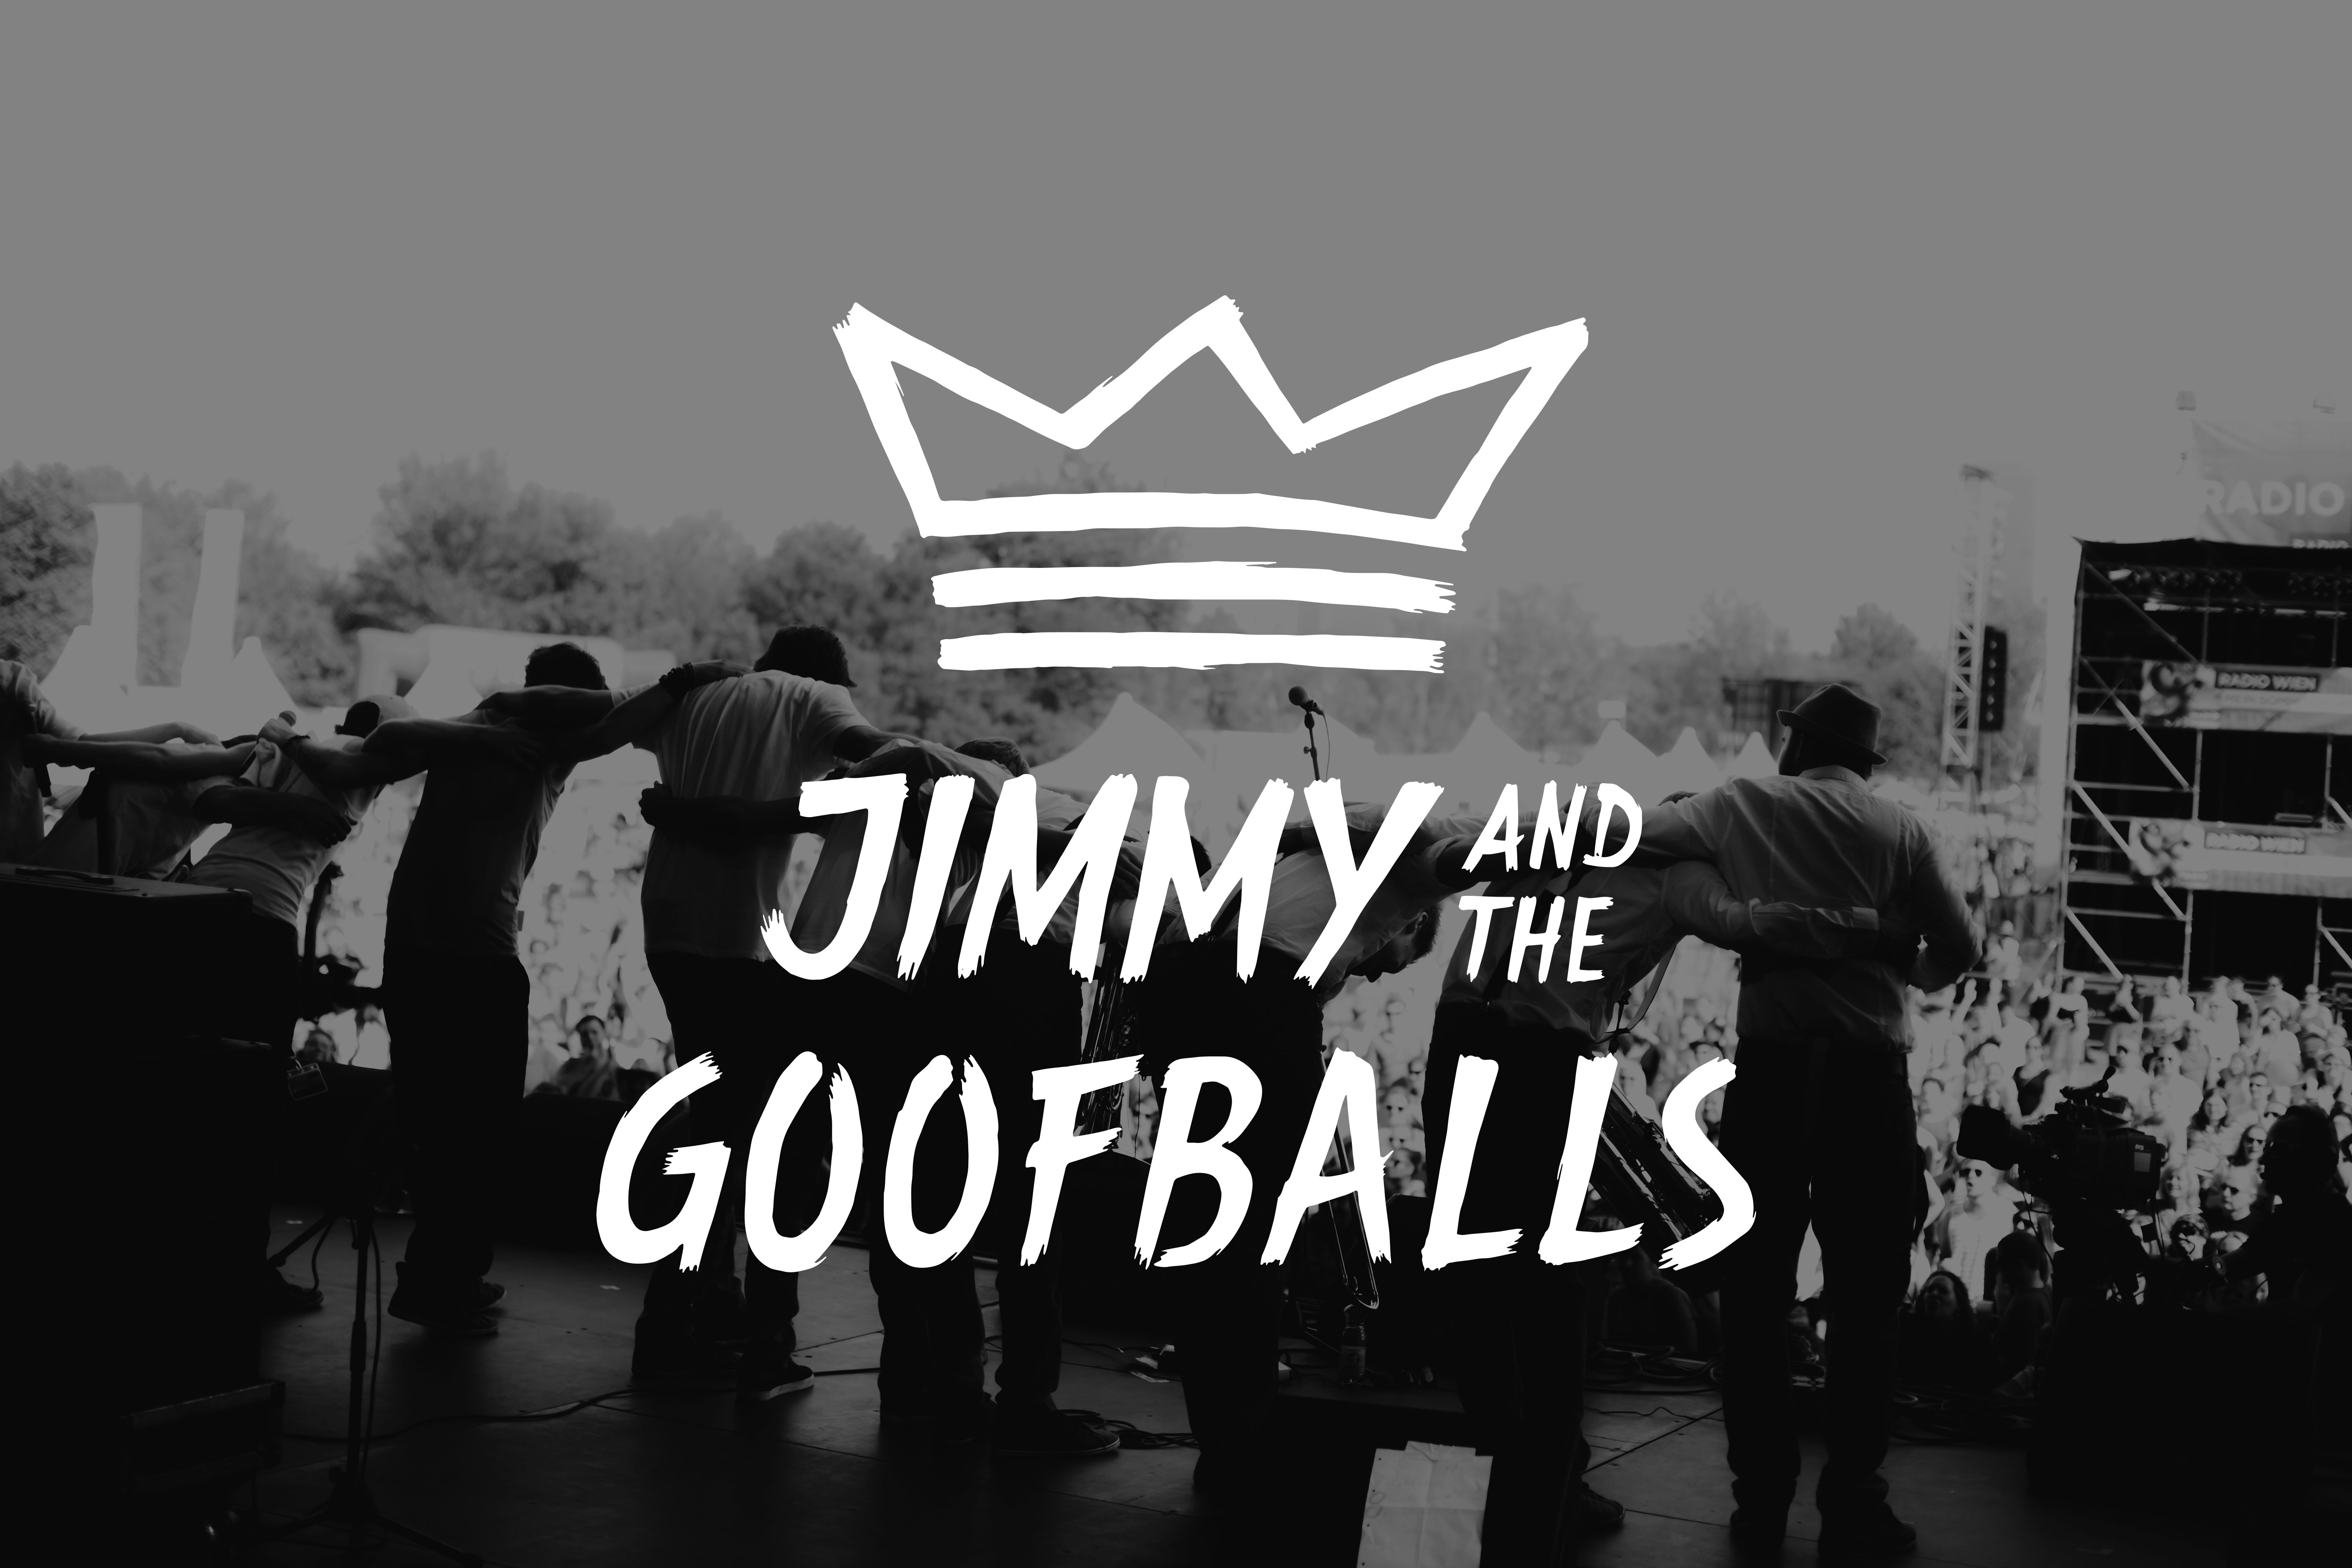 Jimmy And the Goofballs